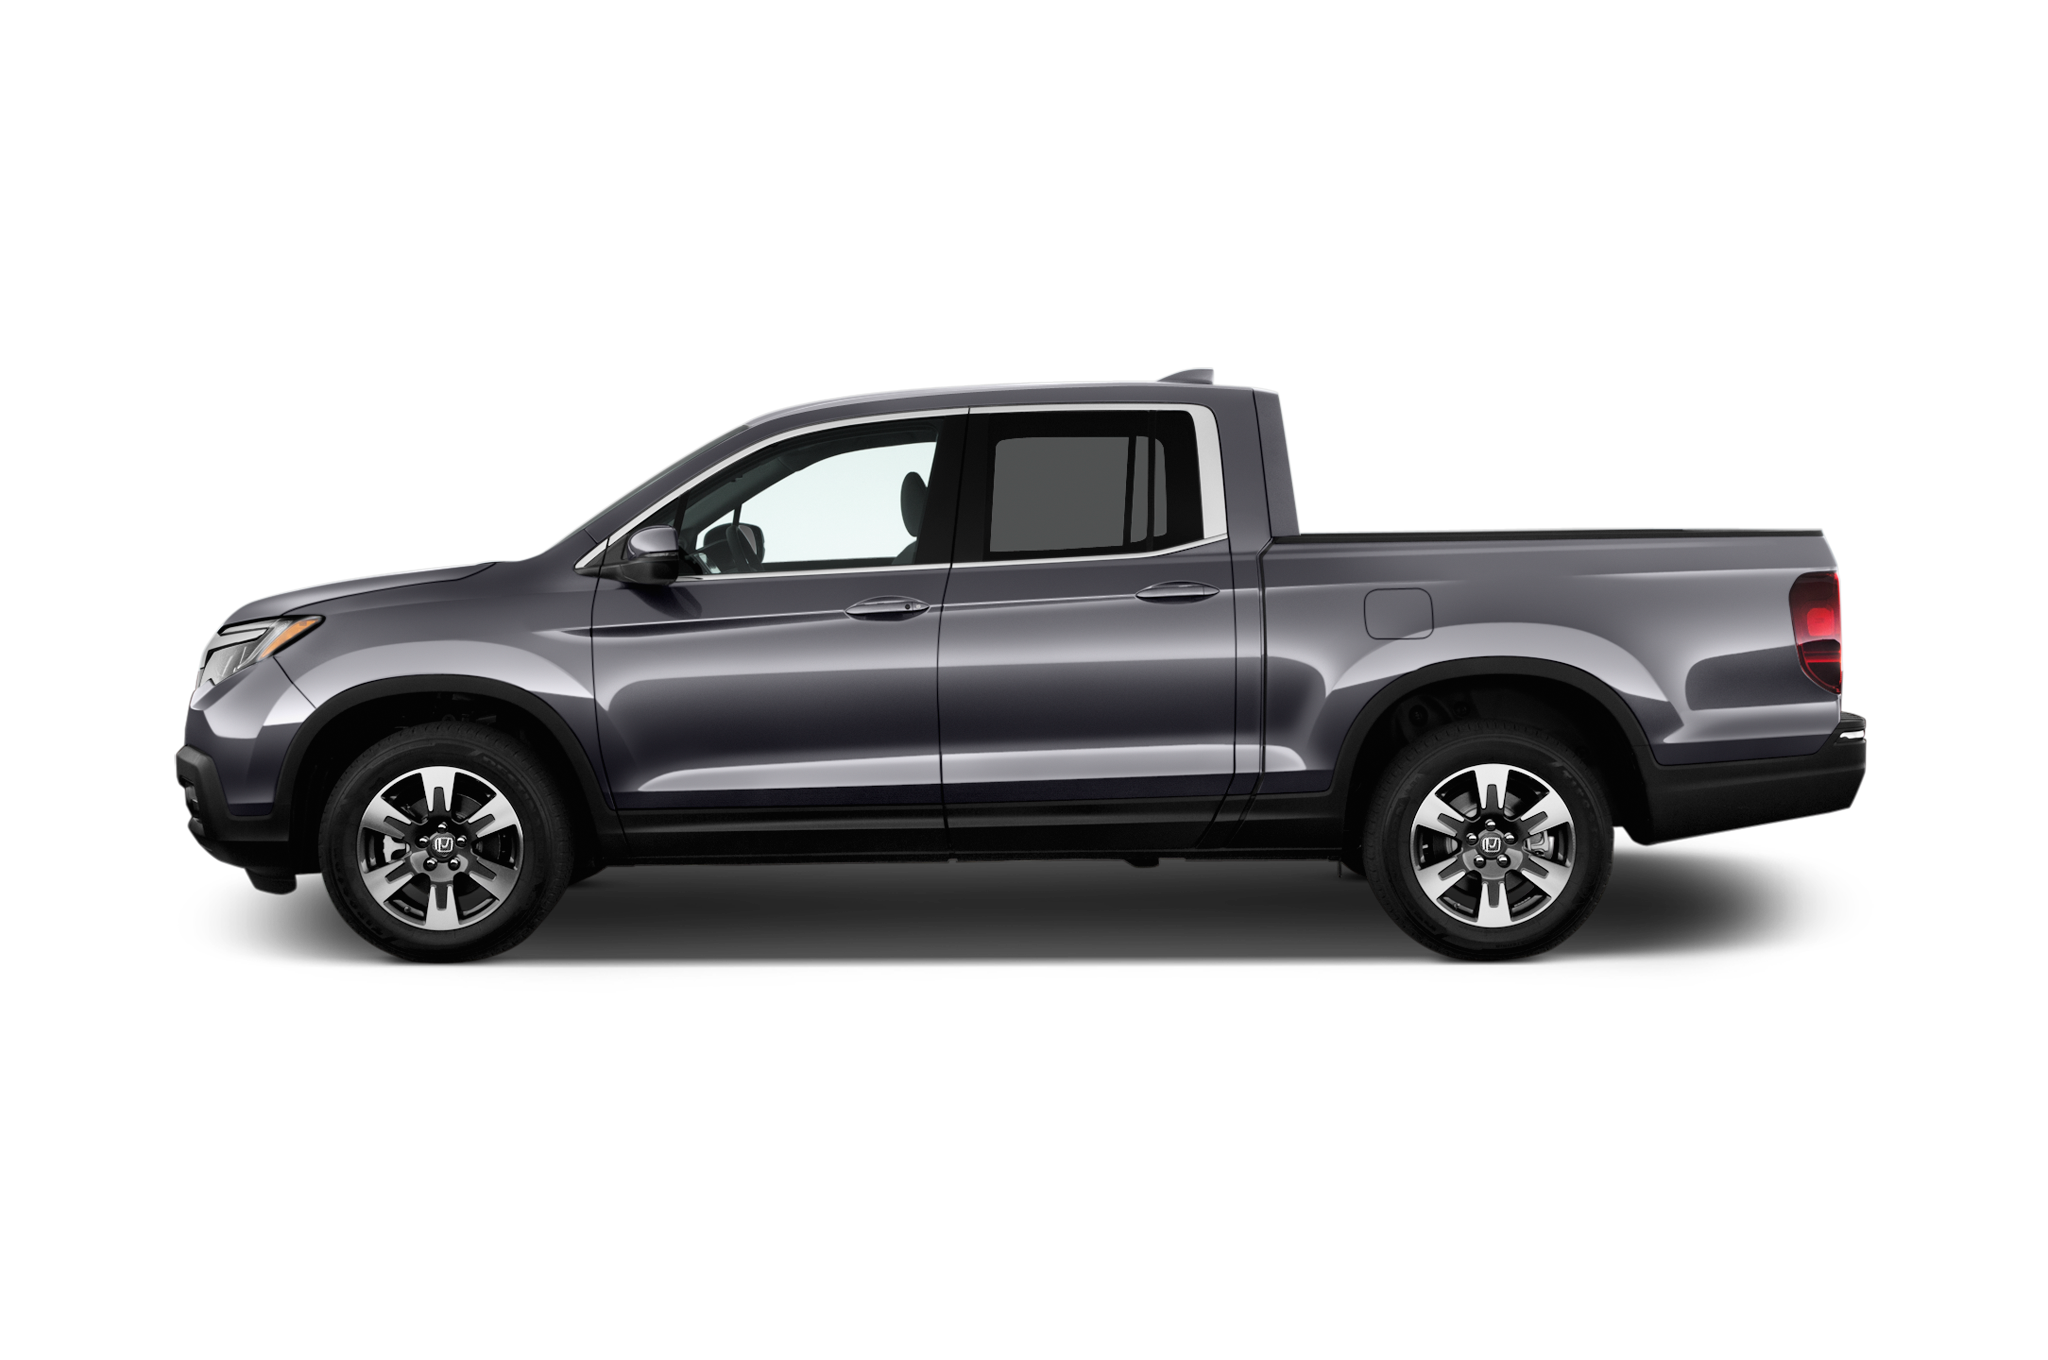 2017 honda ridgeline shows off its truck bed toughness once again automobile magazine. Black Bedroom Furniture Sets. Home Design Ideas